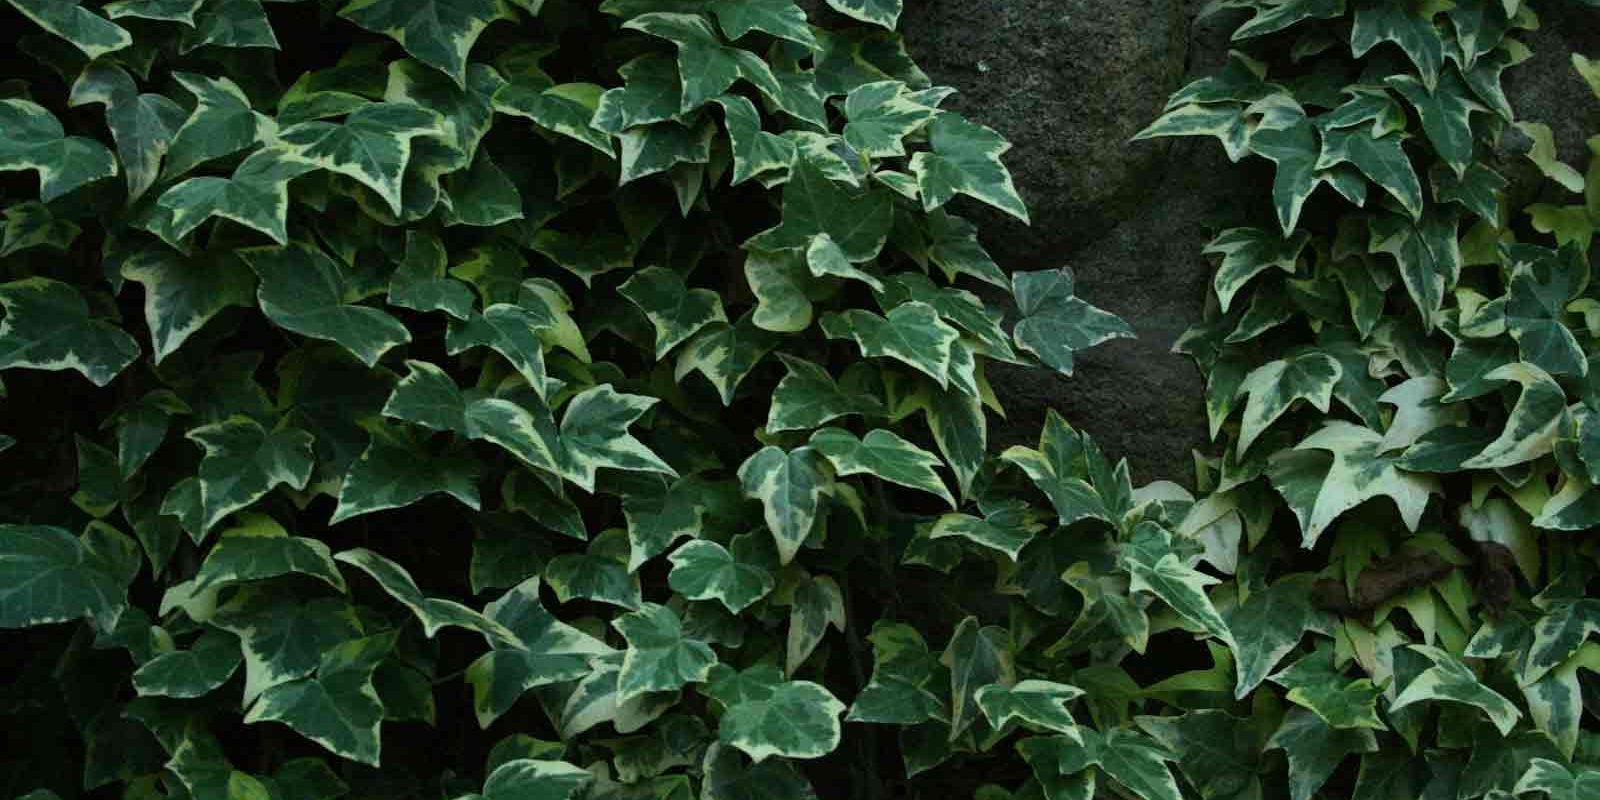 Photograph-of-Goldchild-Ivy,-a-sub-variety-of-English-Ivy